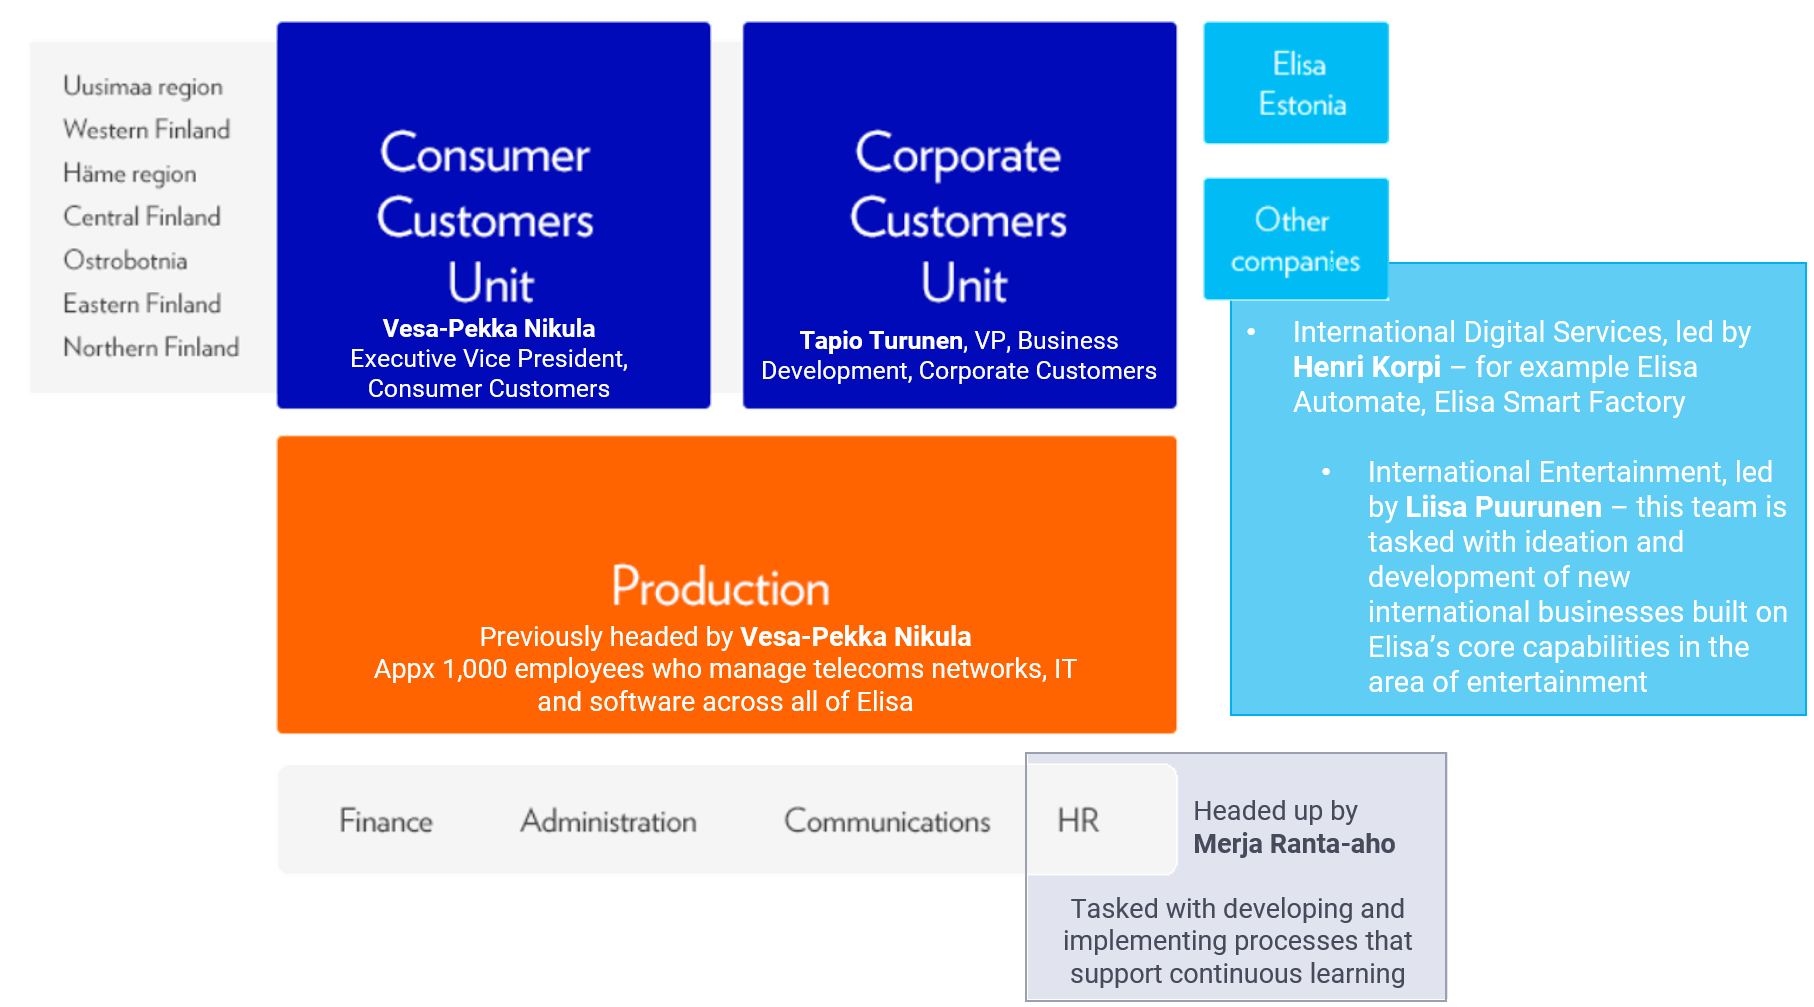 Elisa operational structure and interviewees